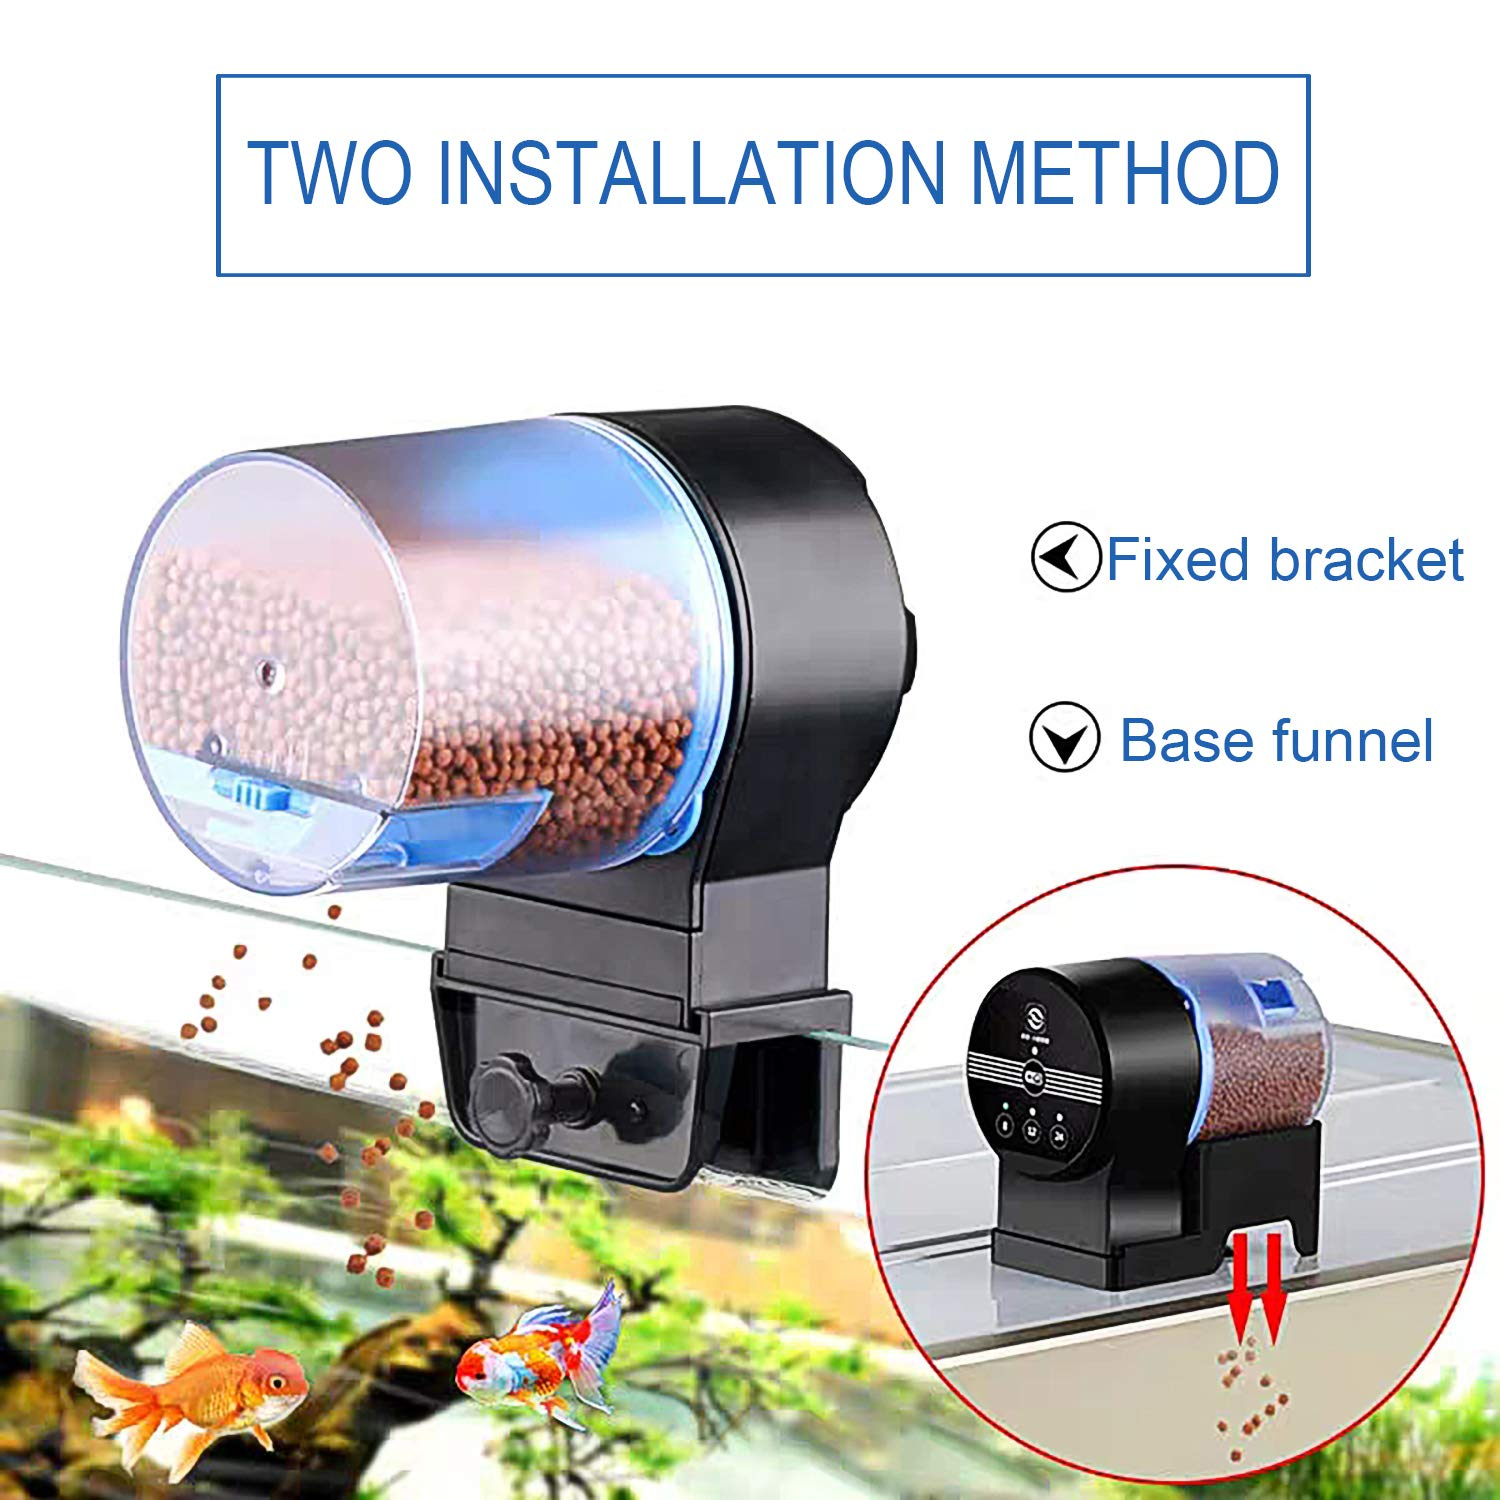 DOTSOG Digital Automatic Fish Feeder - Rechargeable Timer Fish Feeder with USB Charger Cable, Fish Food Dispenser for Aquarium or Fish Tank by DOTSOG (Image #3)